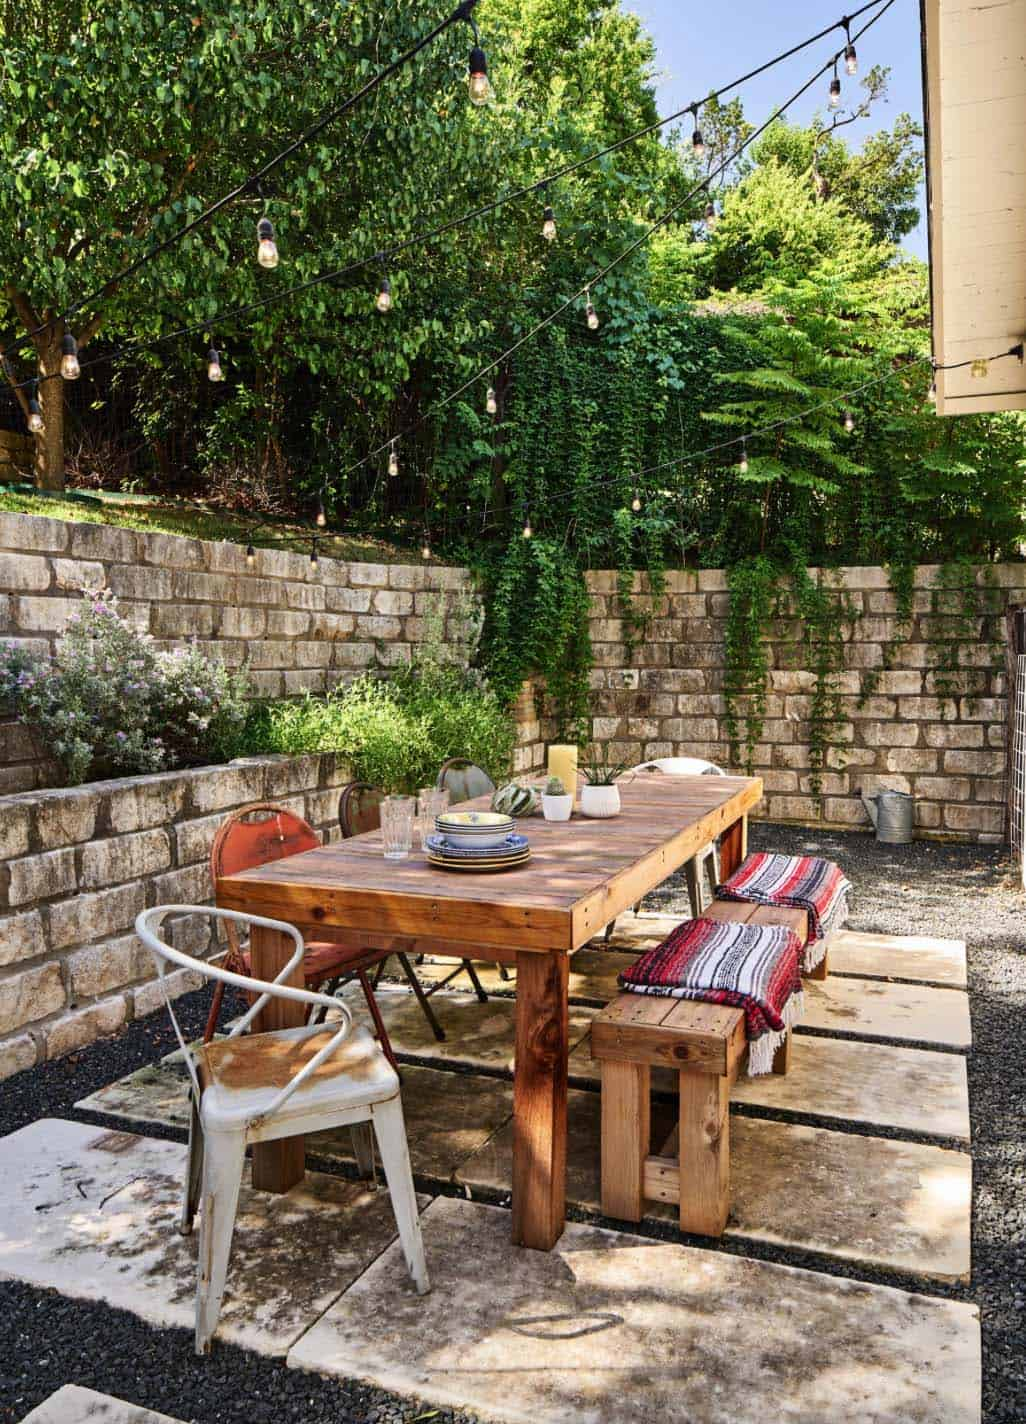 33 Fabulous Ideas For Creating Beautiful Outdoor Living Spaces on Living Spaces Outdoor Dining id=94455